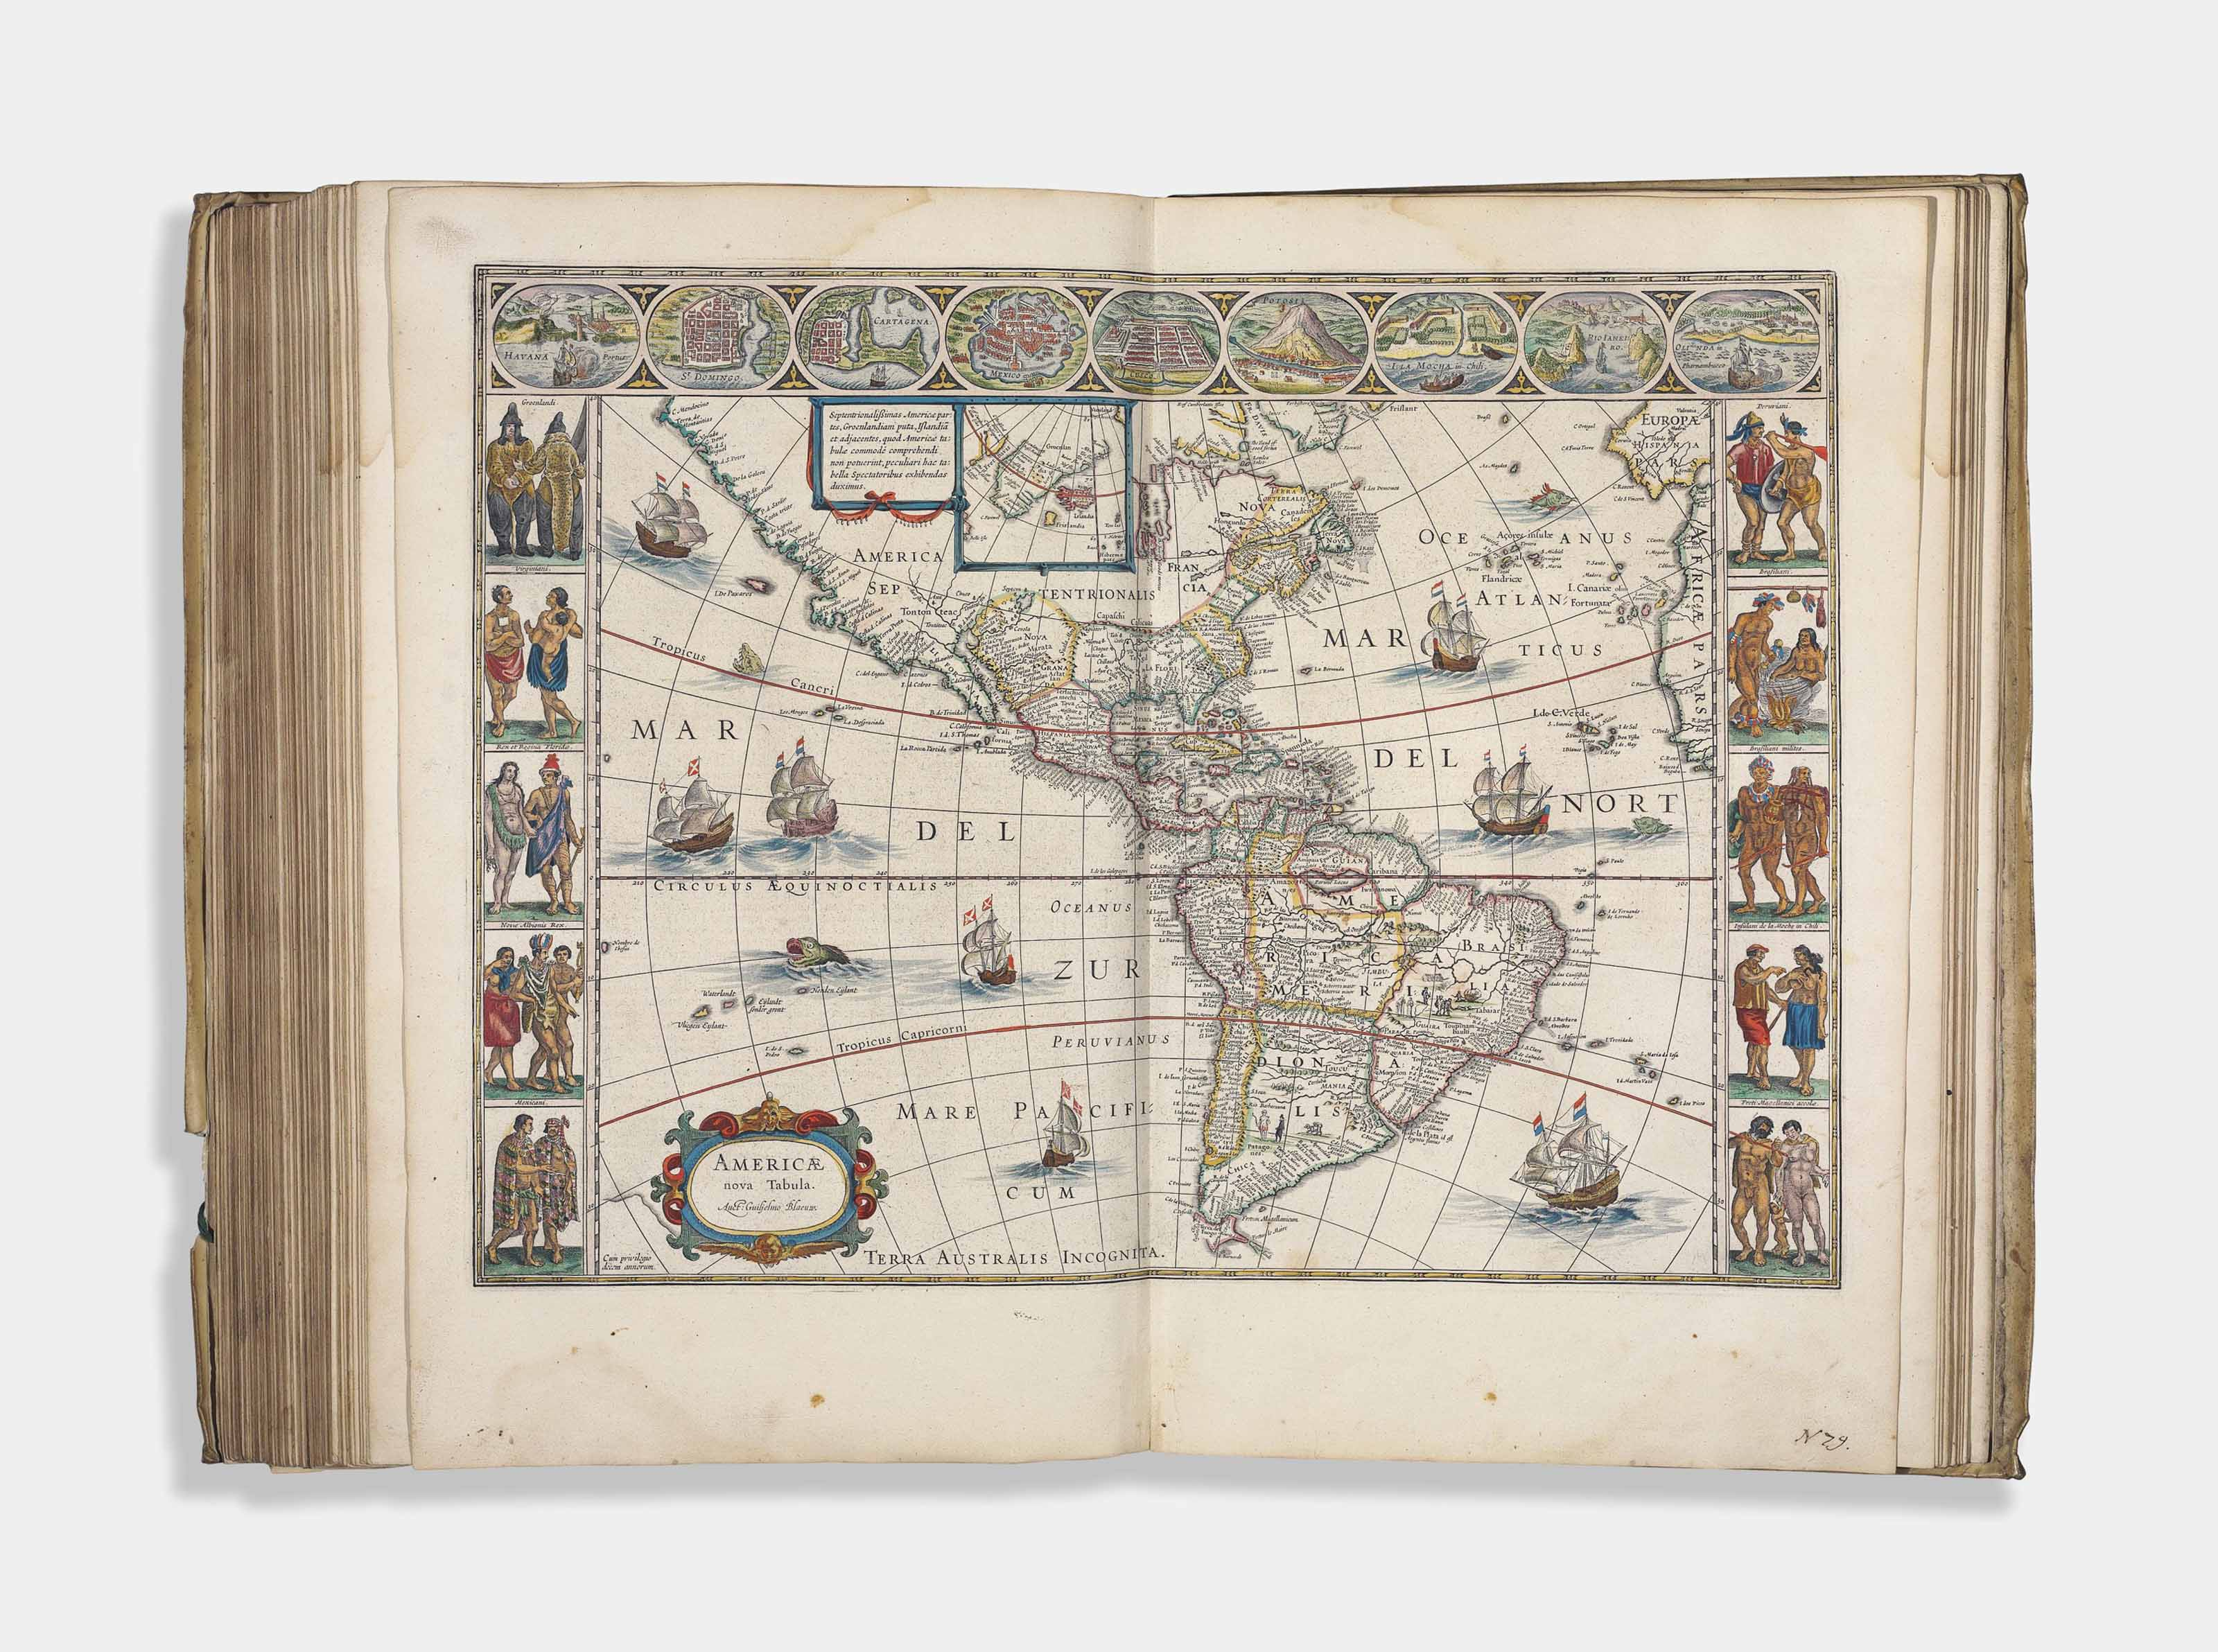 BLAEU, Willem (1571-1638) and Johan BLAEU (1596-1673). Novus Atlas, Das ist, Welt-beschreibung, Mit schönen newen außführlichen Land-Taffeln in Kupffer gestochen... Ander Theil. [Volume II. France, Spain and the Continents]. Amsterdam: Johann Blaeu, 1647.